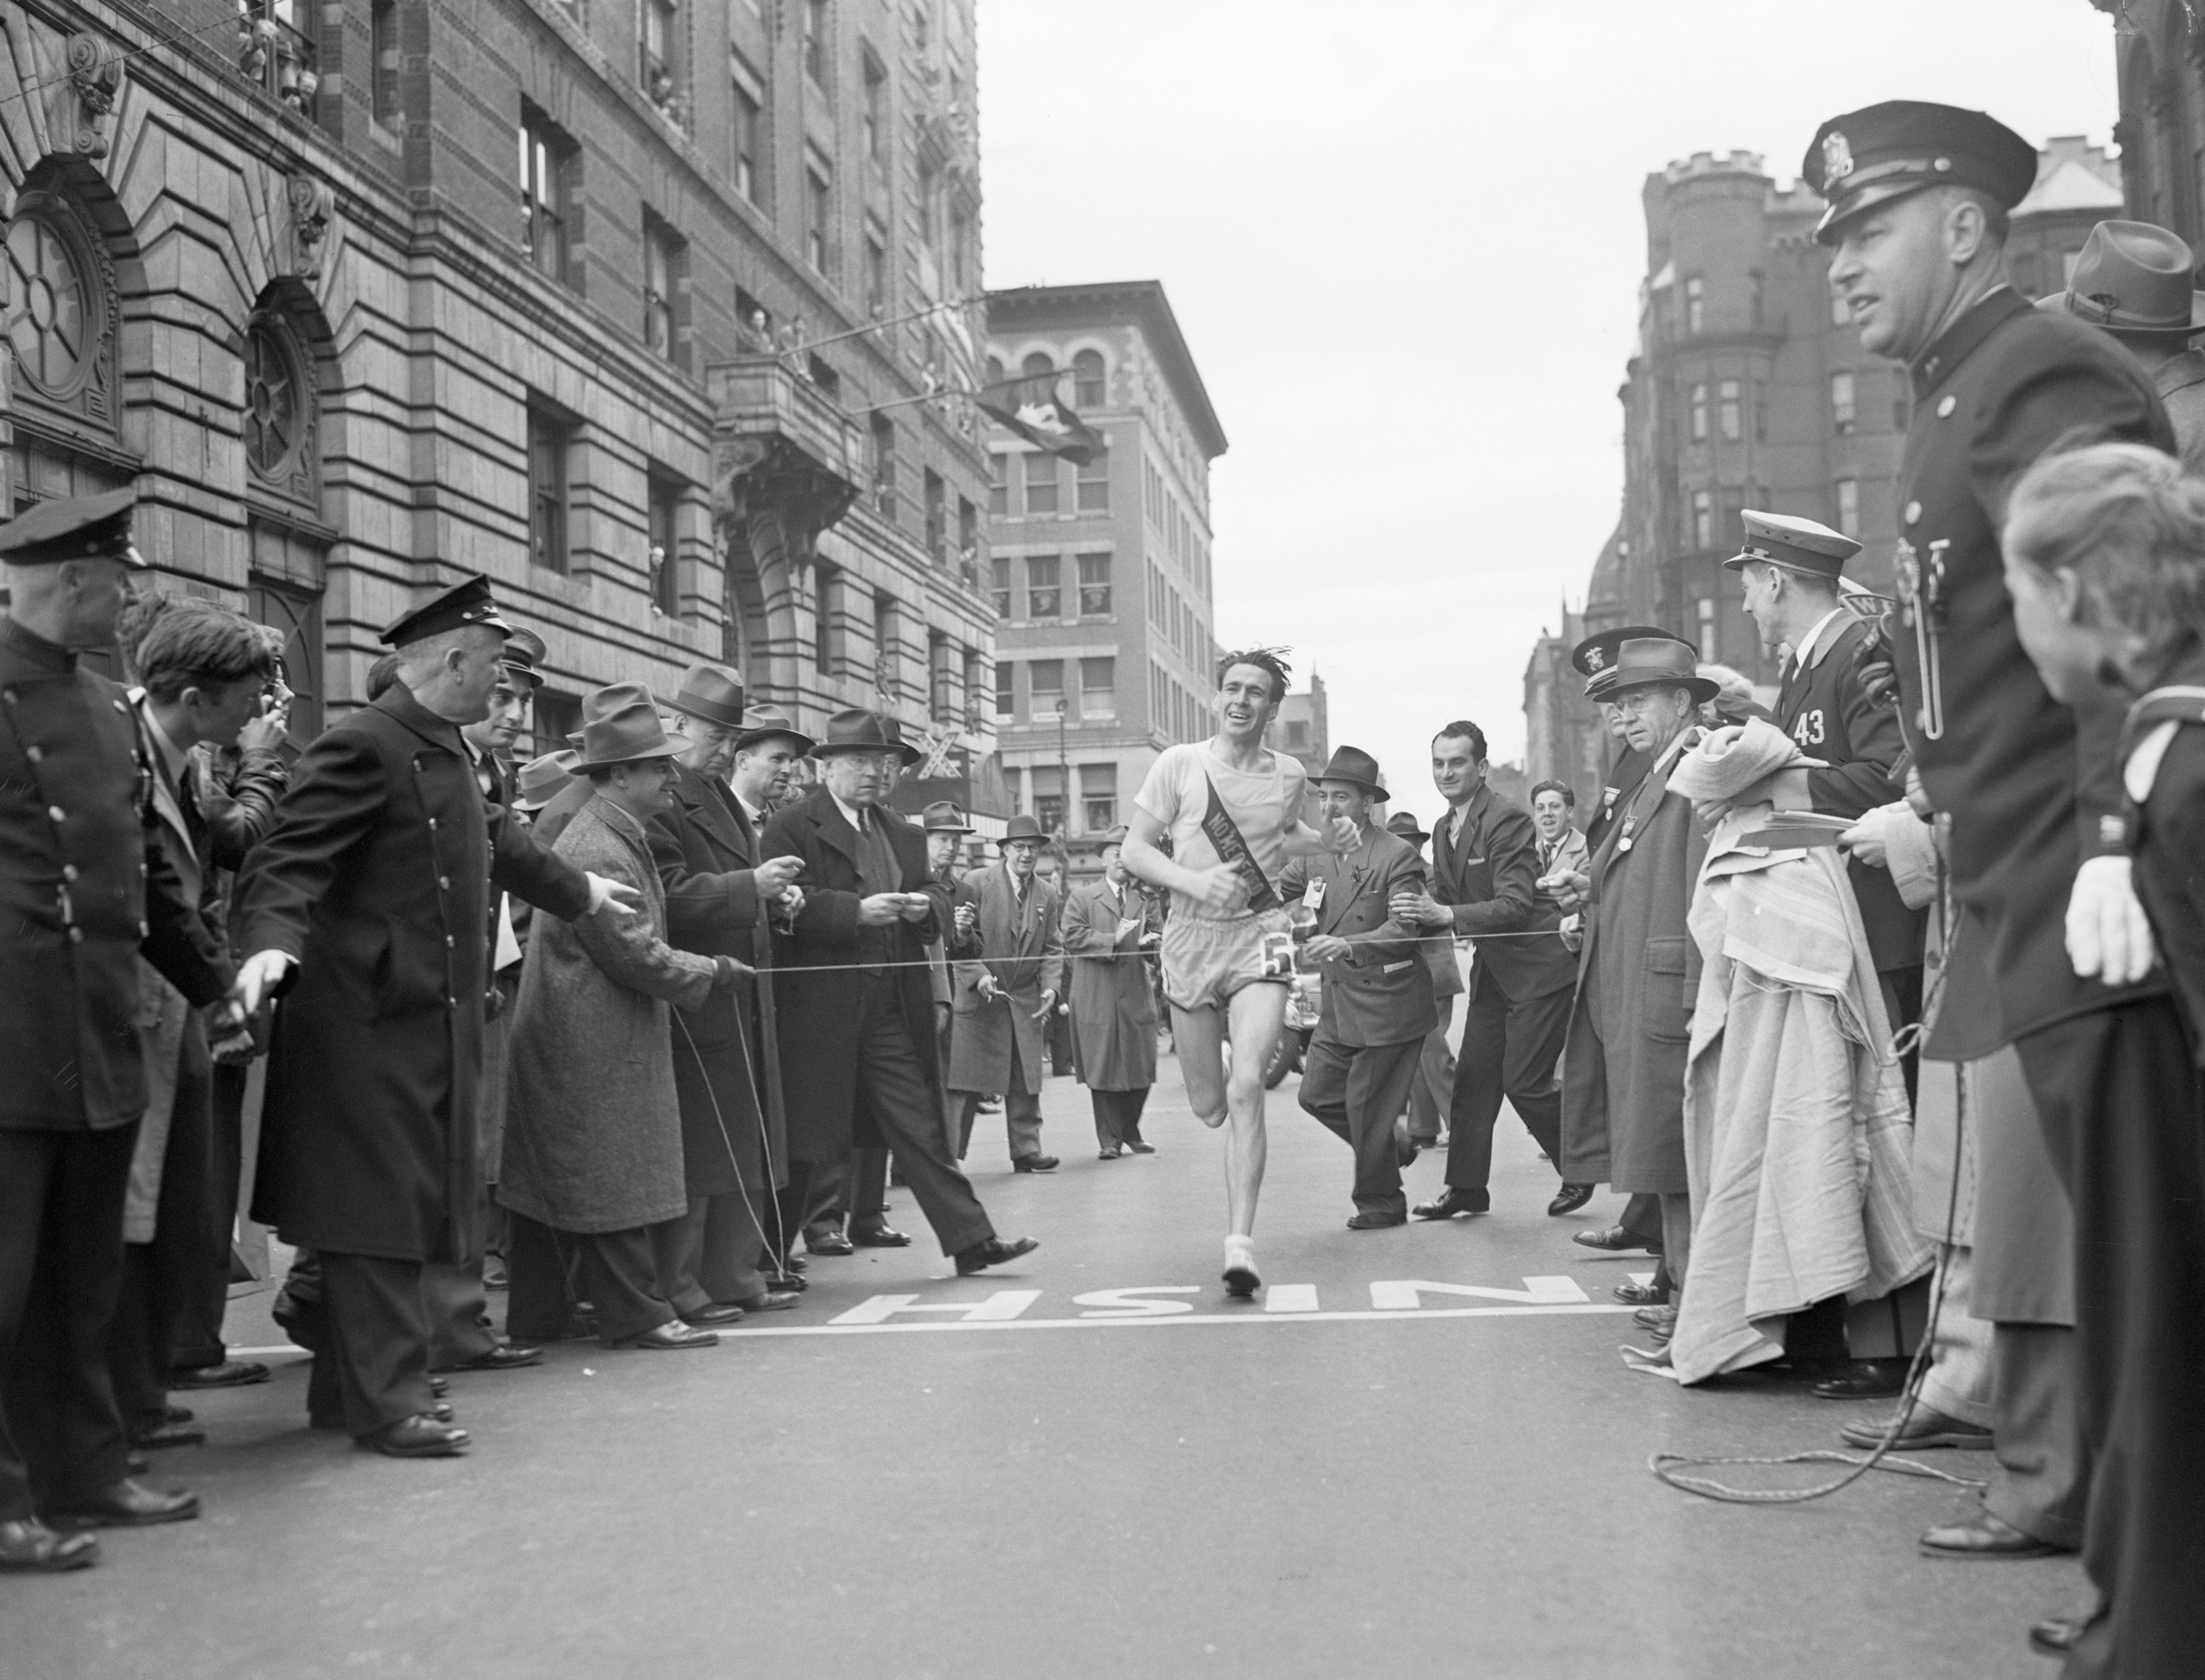 Joe Smith. 36 year old Medford, Mass., milkman, crosses the final line to win the 46th renewal of the Boston A. A. Marathon, setting a new world mark of 2 hours 26 minutes 51 1/5 seconds, in 1941.